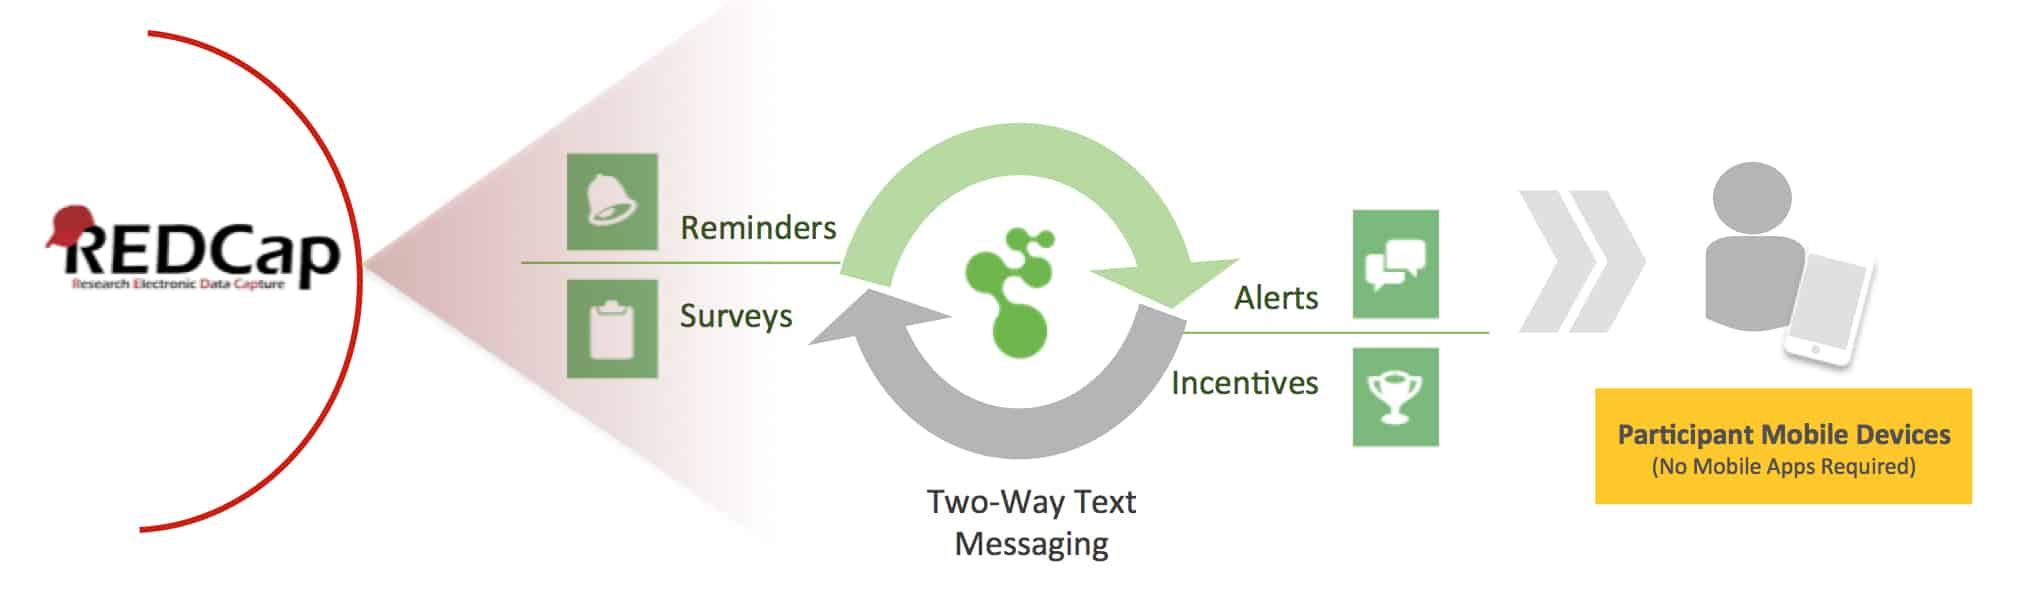 11 Ways Text Messaging Makes REDCap Data Capture Software Even More Powerful